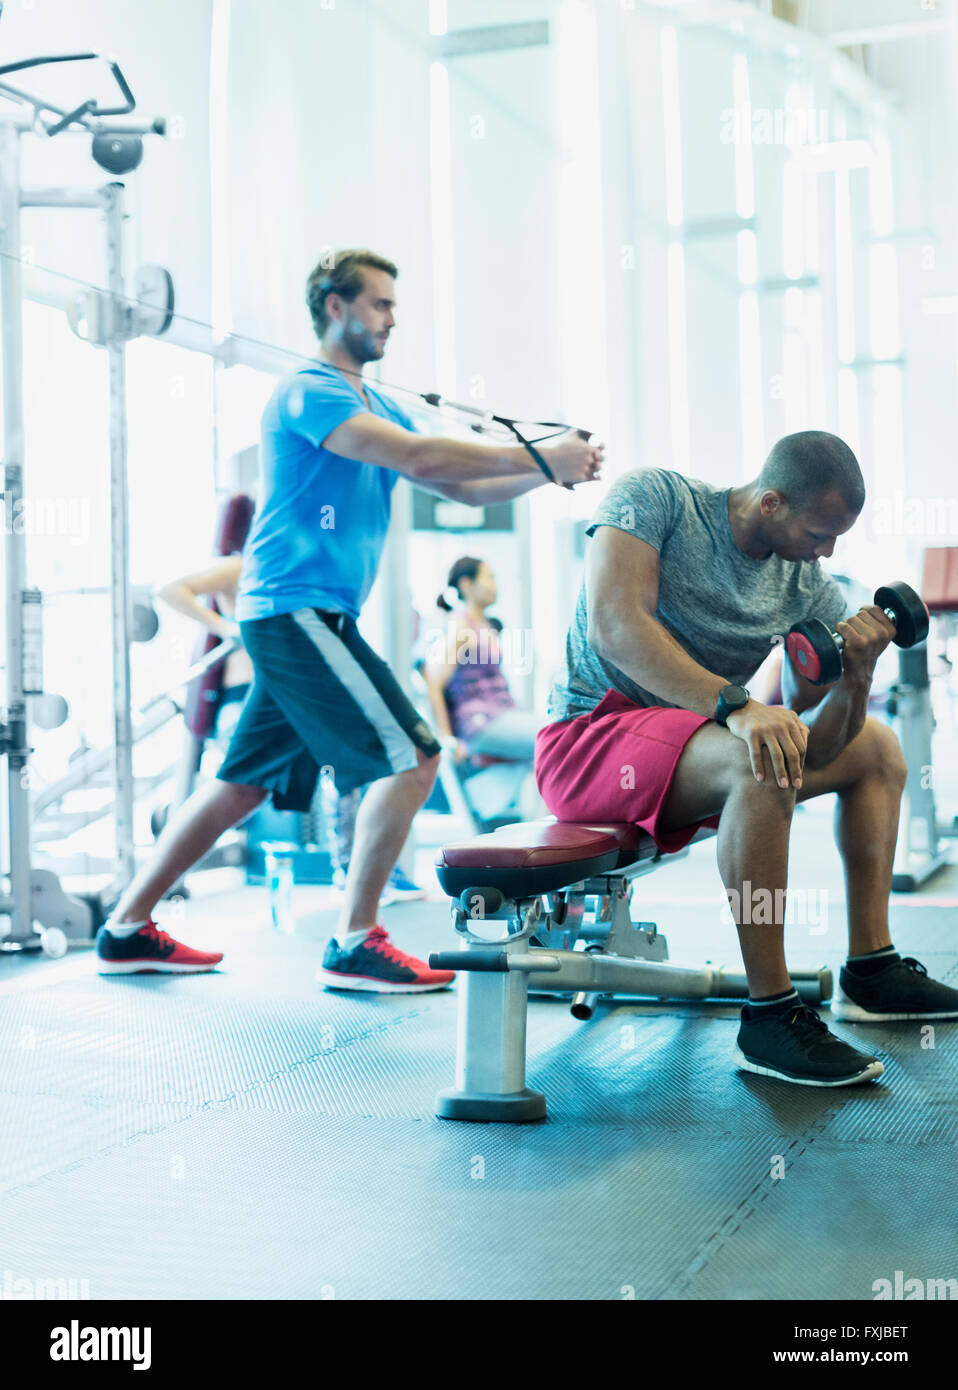 Men working out at gym - Stock Image